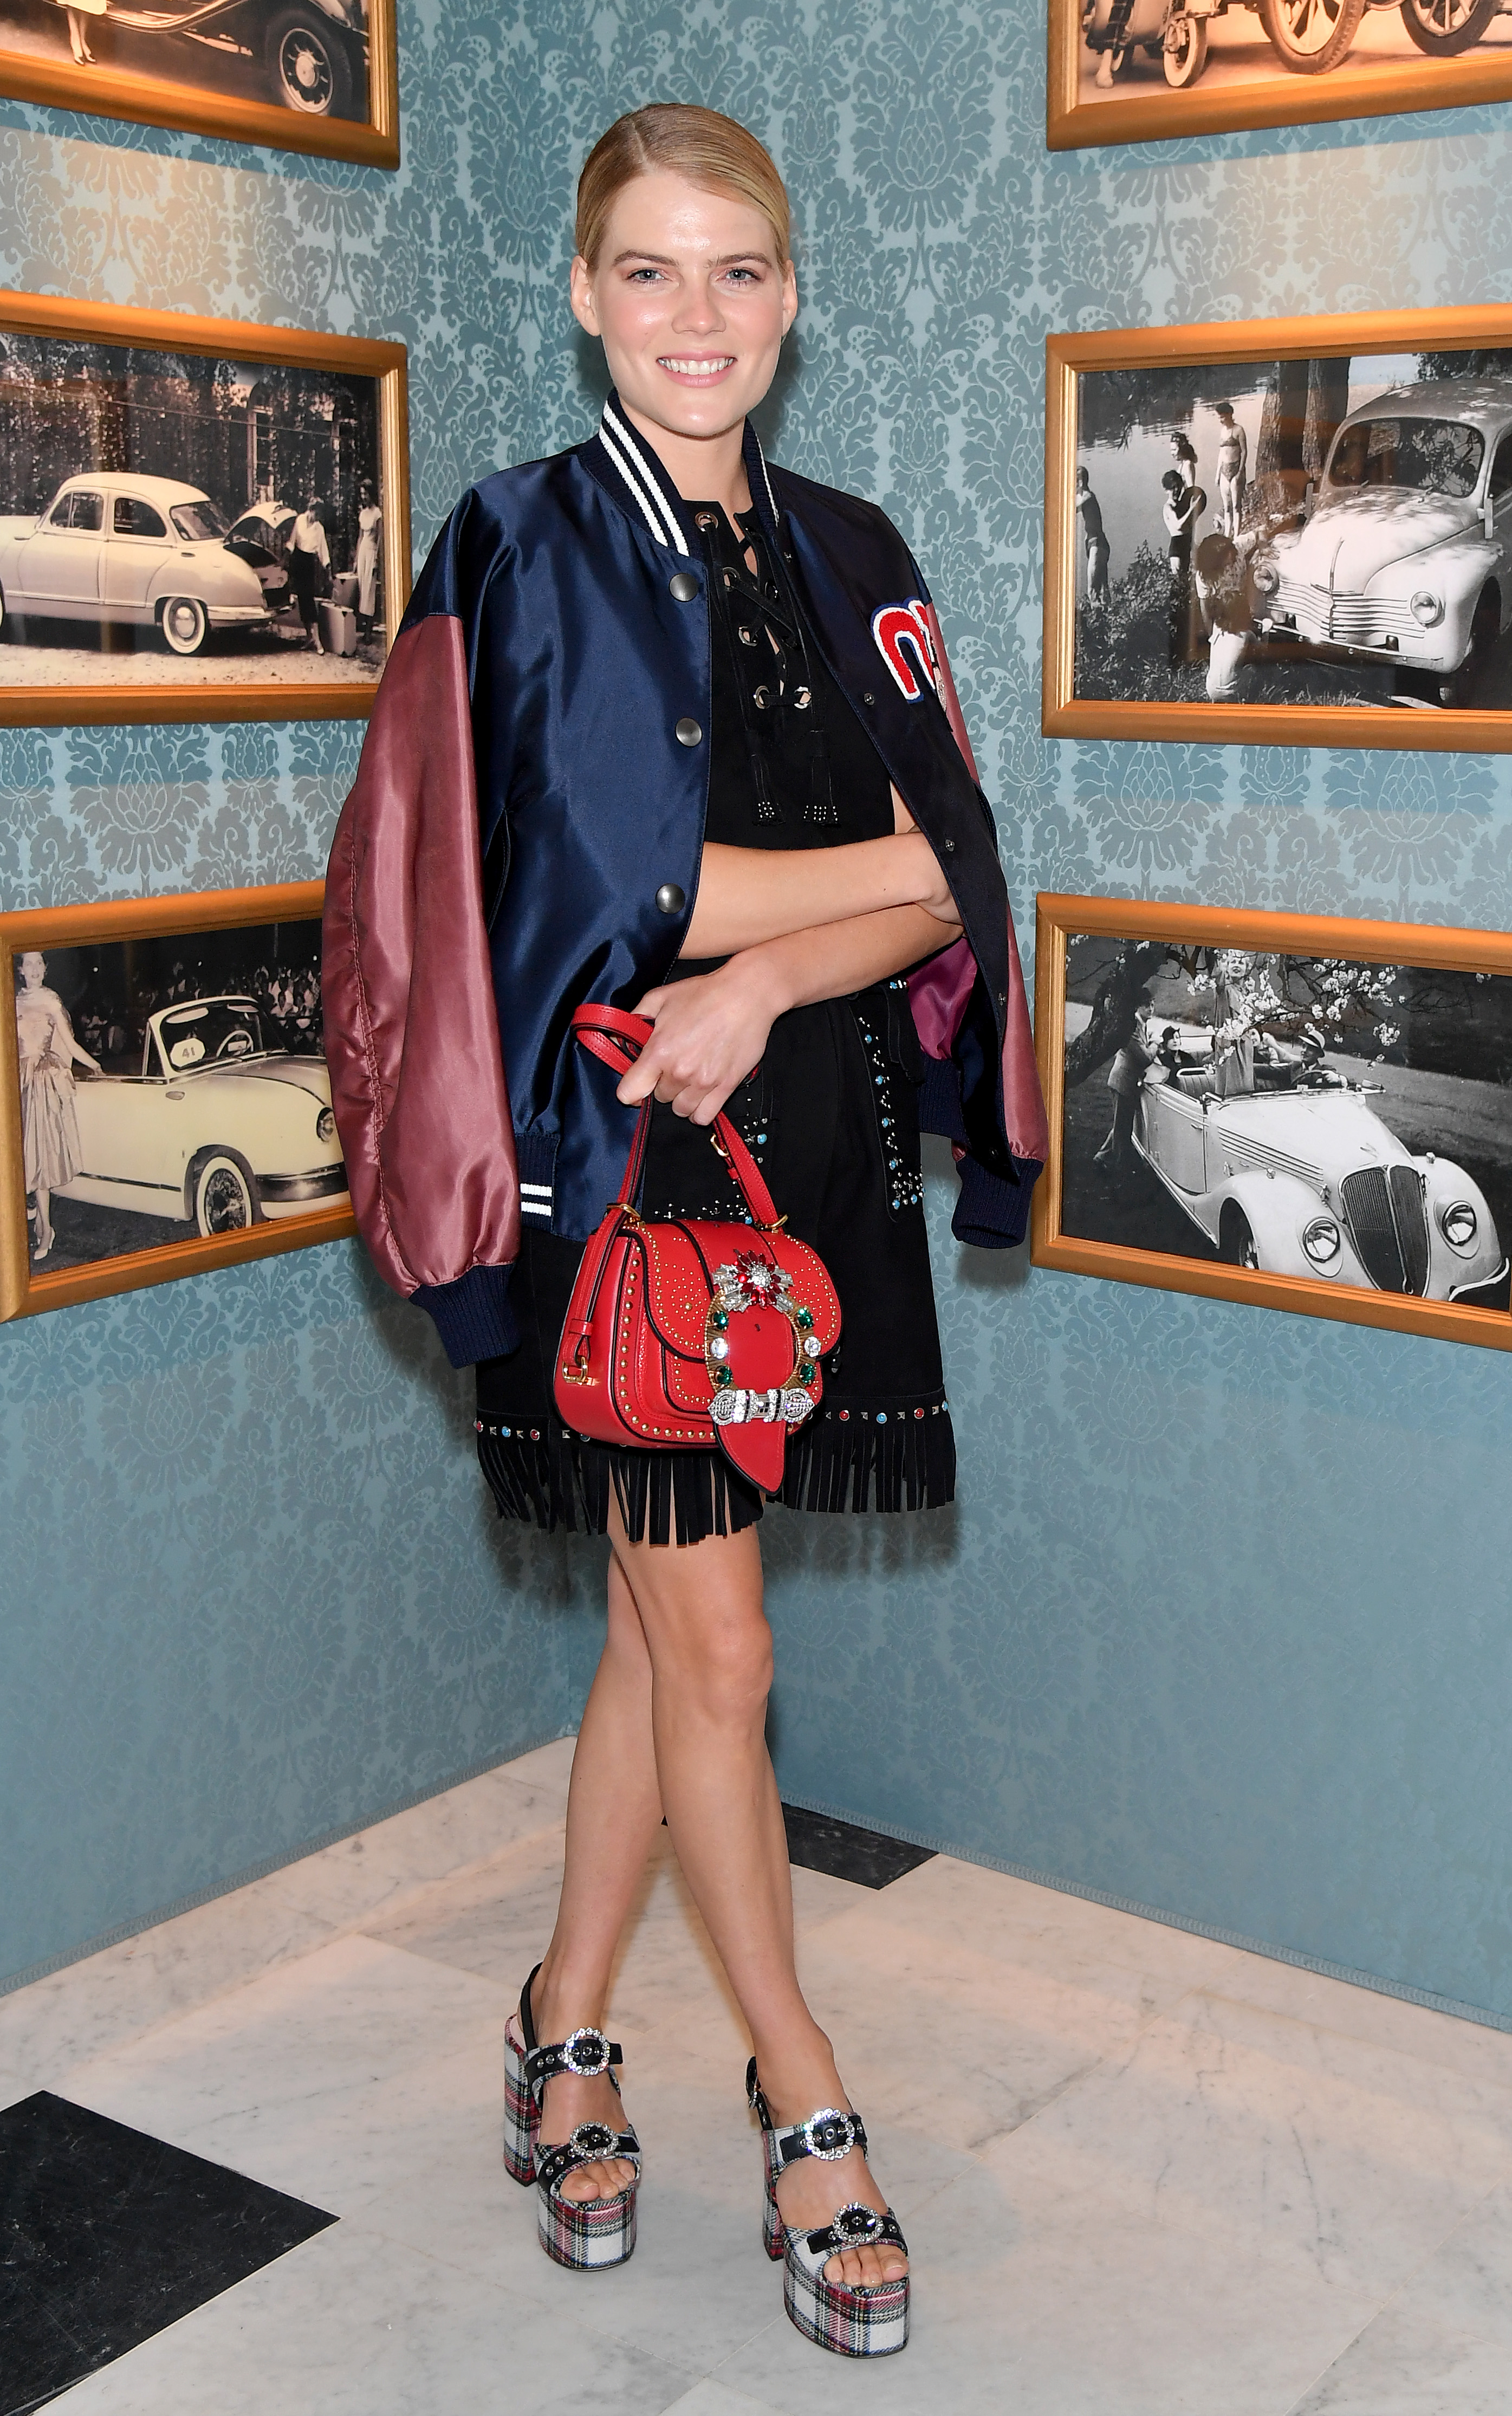 PARIS, FRANCE - JULY 02:  Emma Greenwell attends Miu Miu Cruise Collection show as part of Haute Couture Paris Fashion Week on July 2, 2017 in Paris, France.  (Photo by Dominique Charriau/Getty Images for Miu Miu) *** Local Caption *** Emma Greenwell